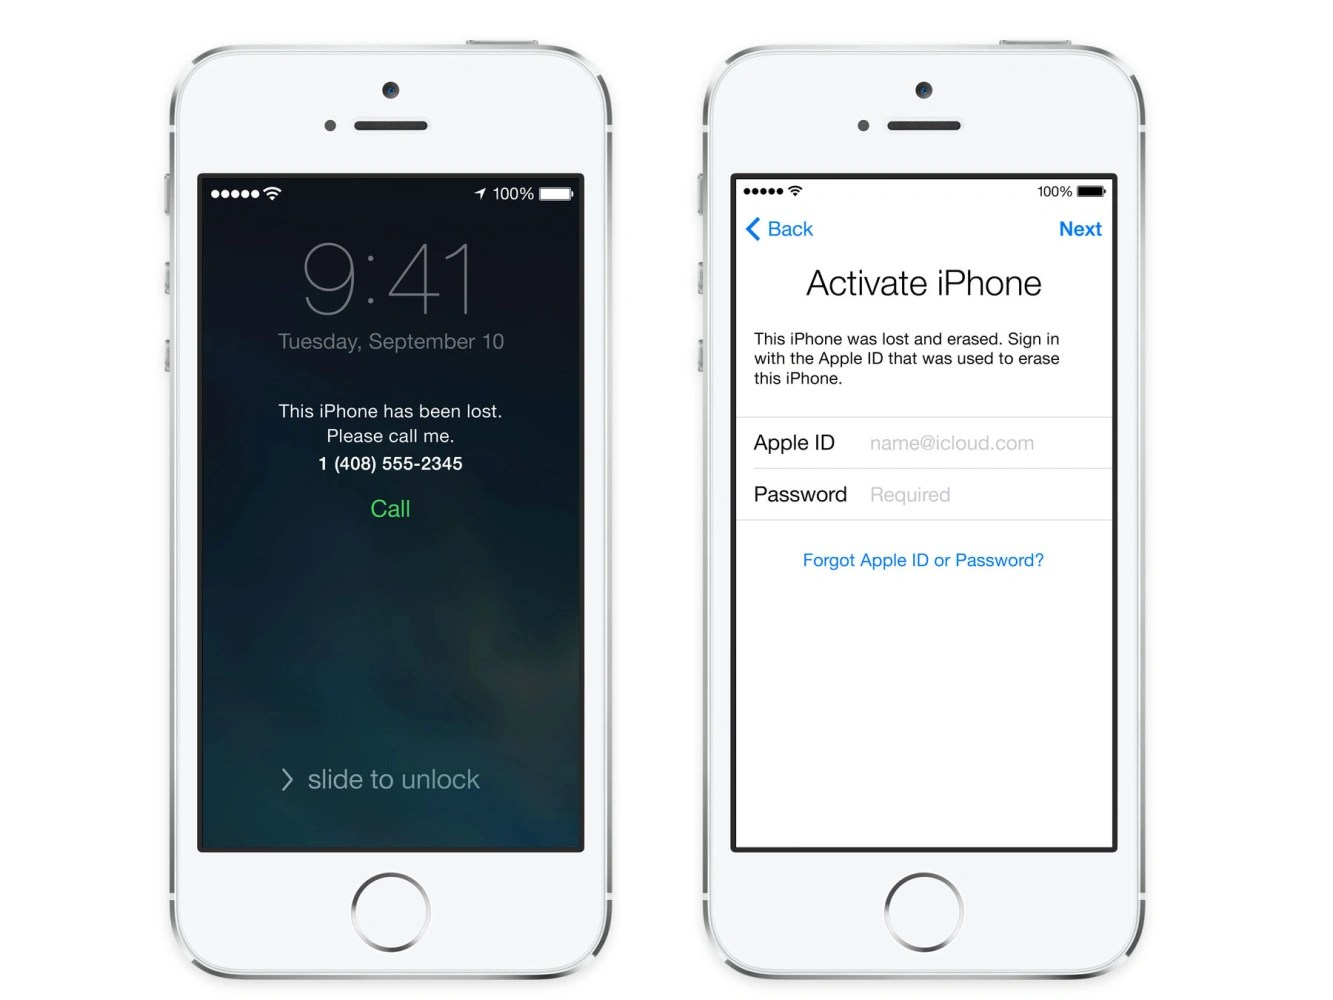 Activation Lock may be most important iOS 7 feature   NBC News New Find My iPhone features in iOS 7